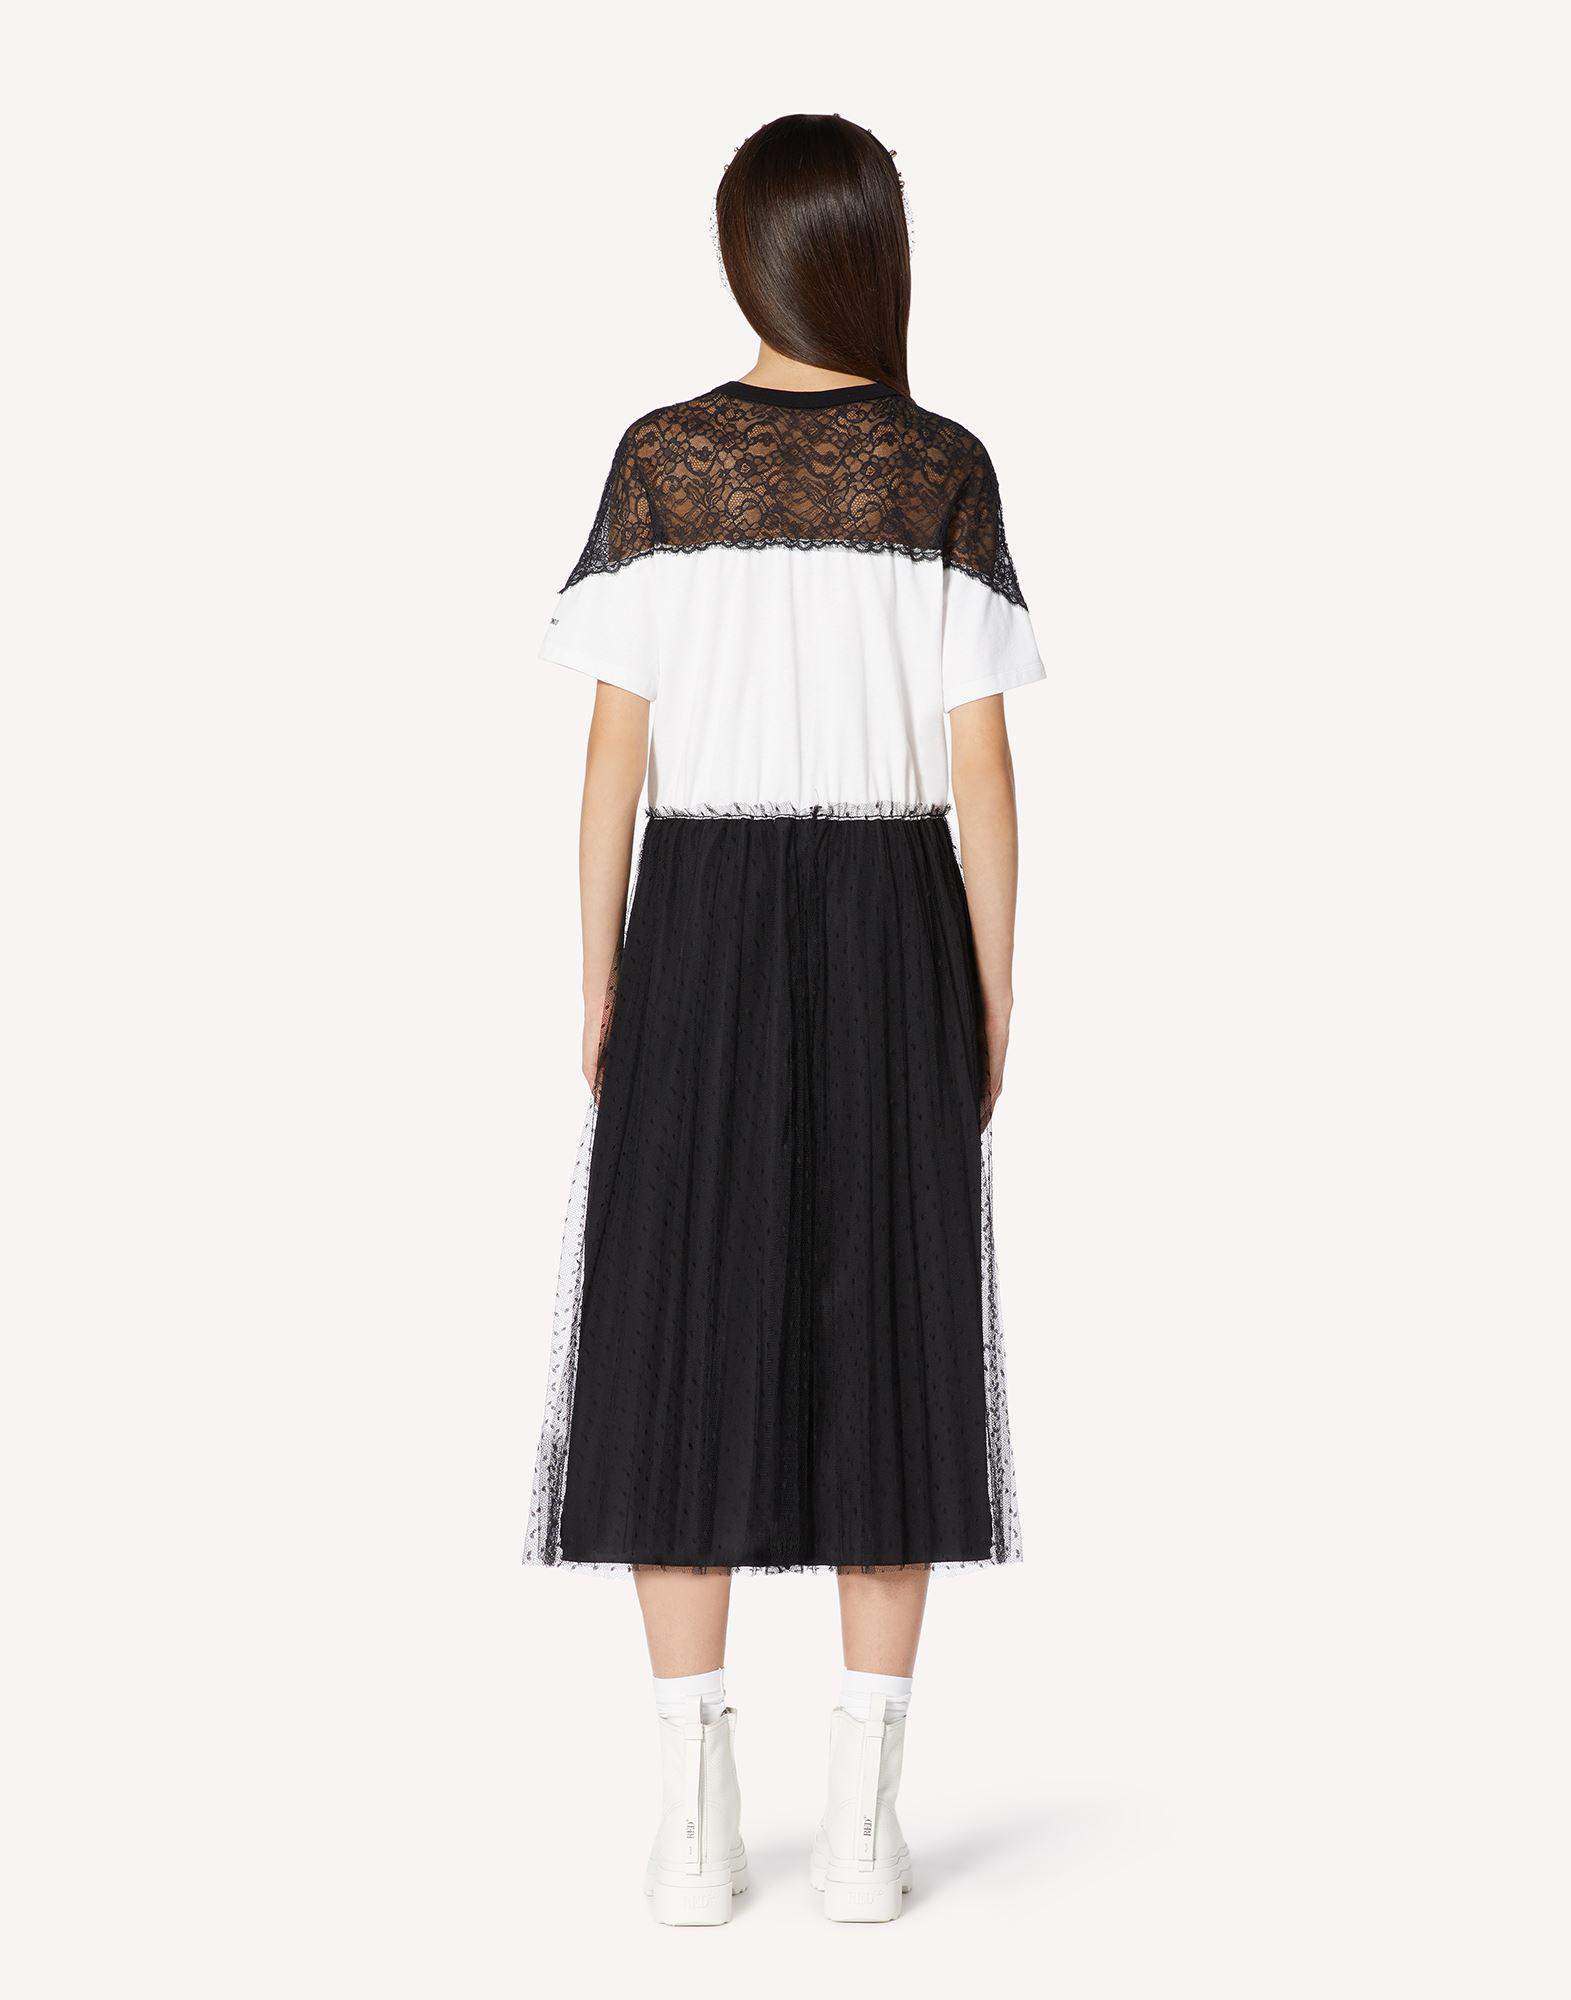 JERSEY DRESS WITH POINT D'ESPRIT TULLE AND LACE 1